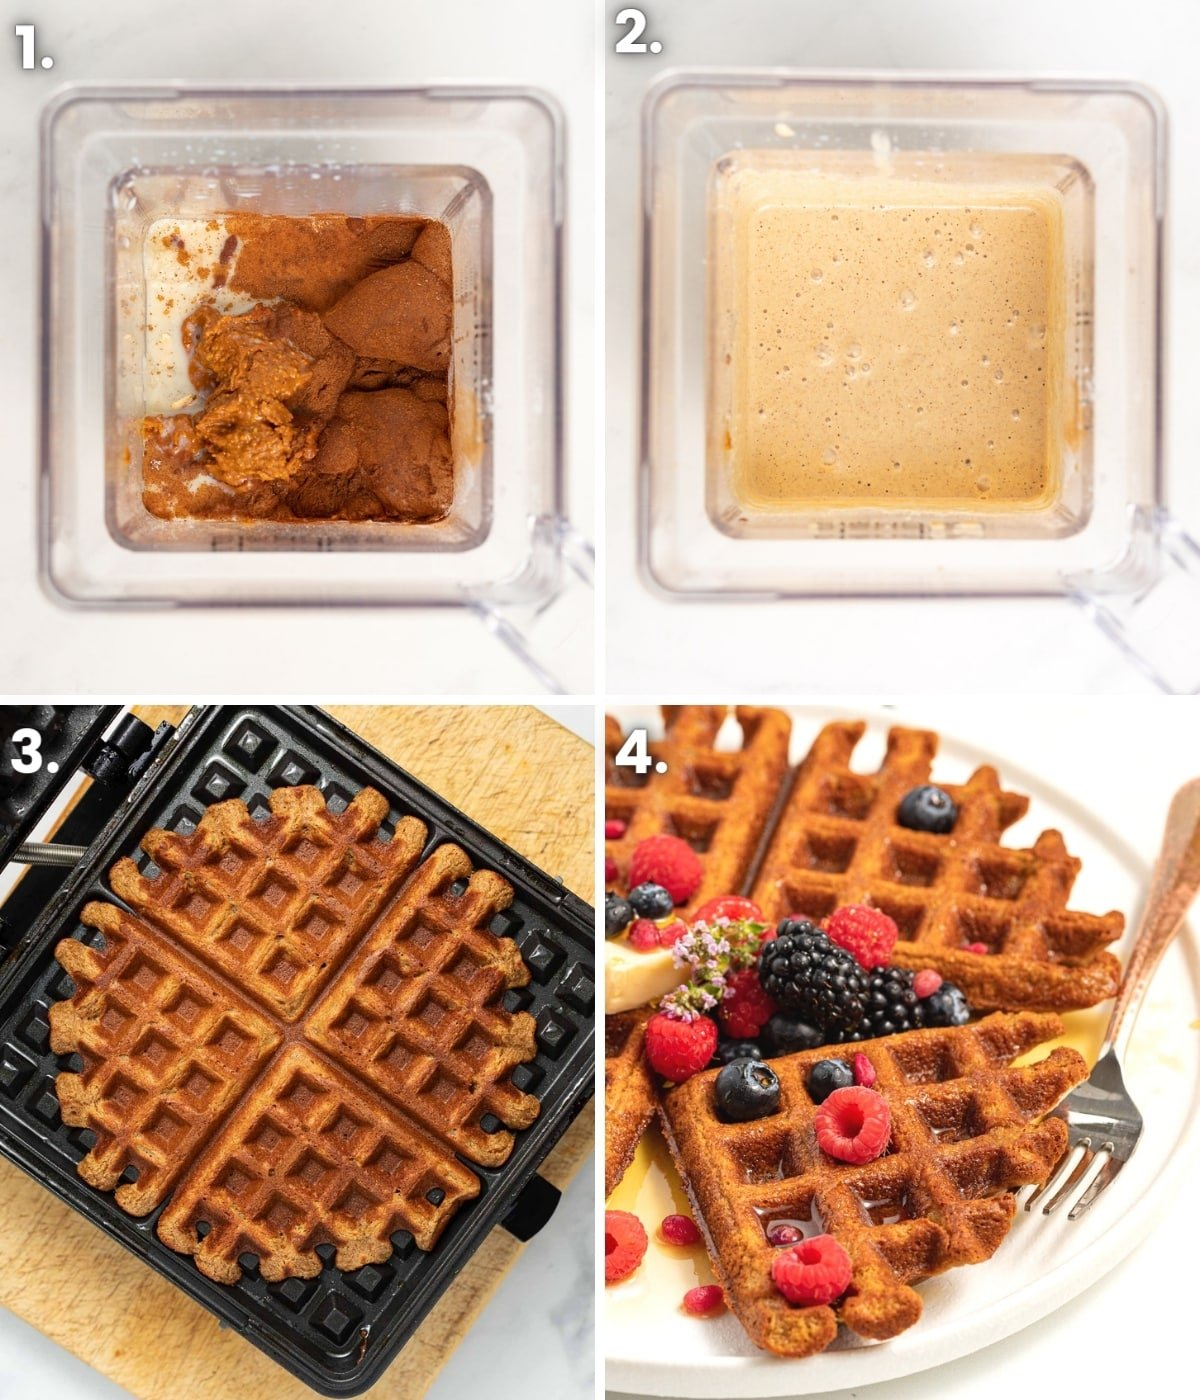 how to make oatmeal waffles as per the written ingredients